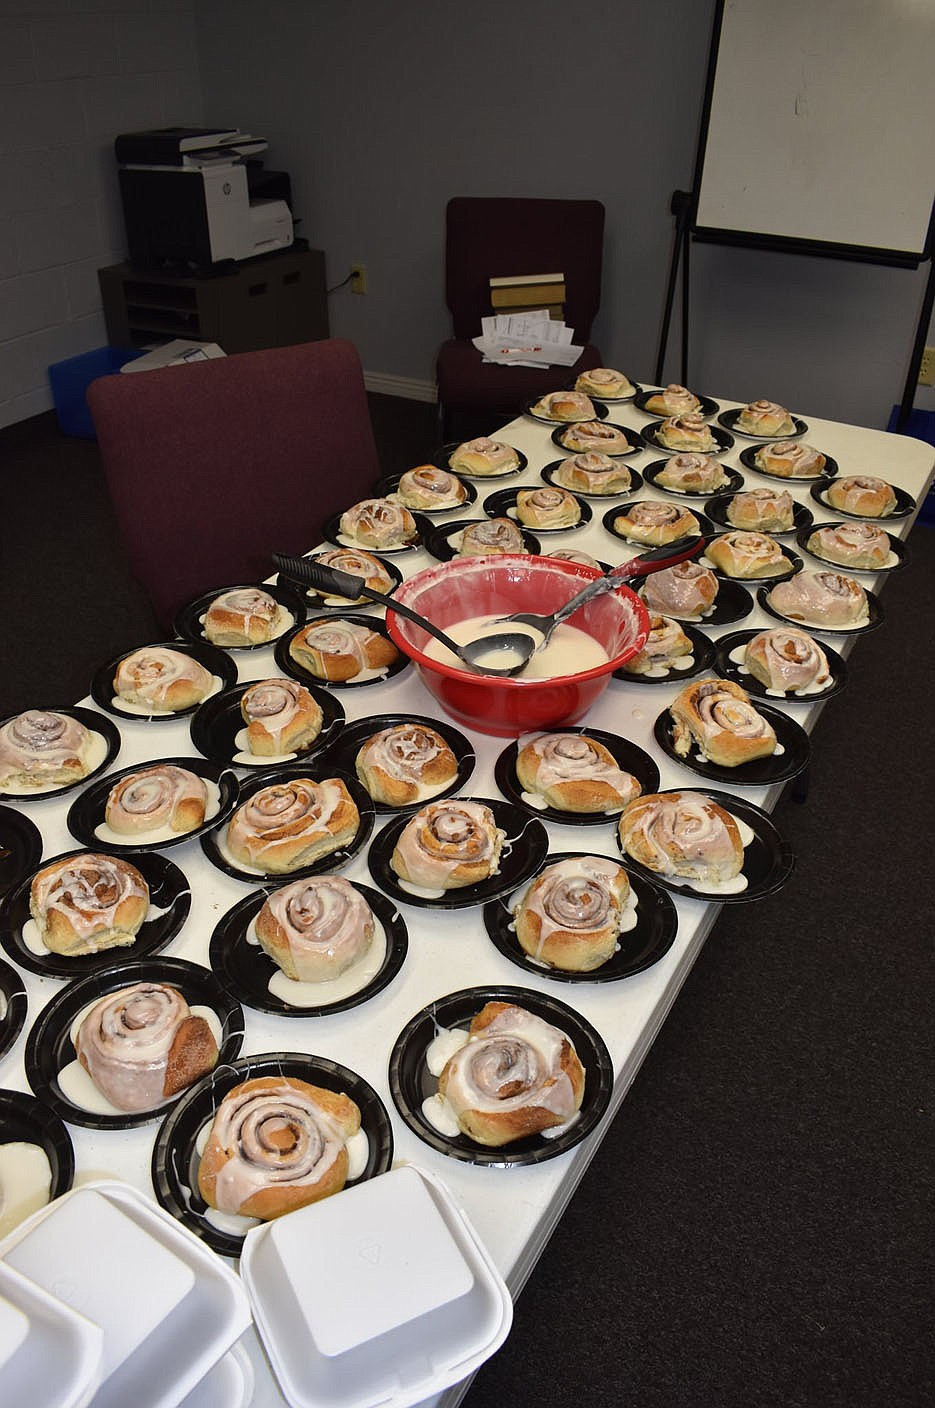 PHOTO BY DALANA FULLER. Photo of homemade cinnamon rolls and icing served at the event. Each event attendee was offered a cinnamon roll to eat or to-go.